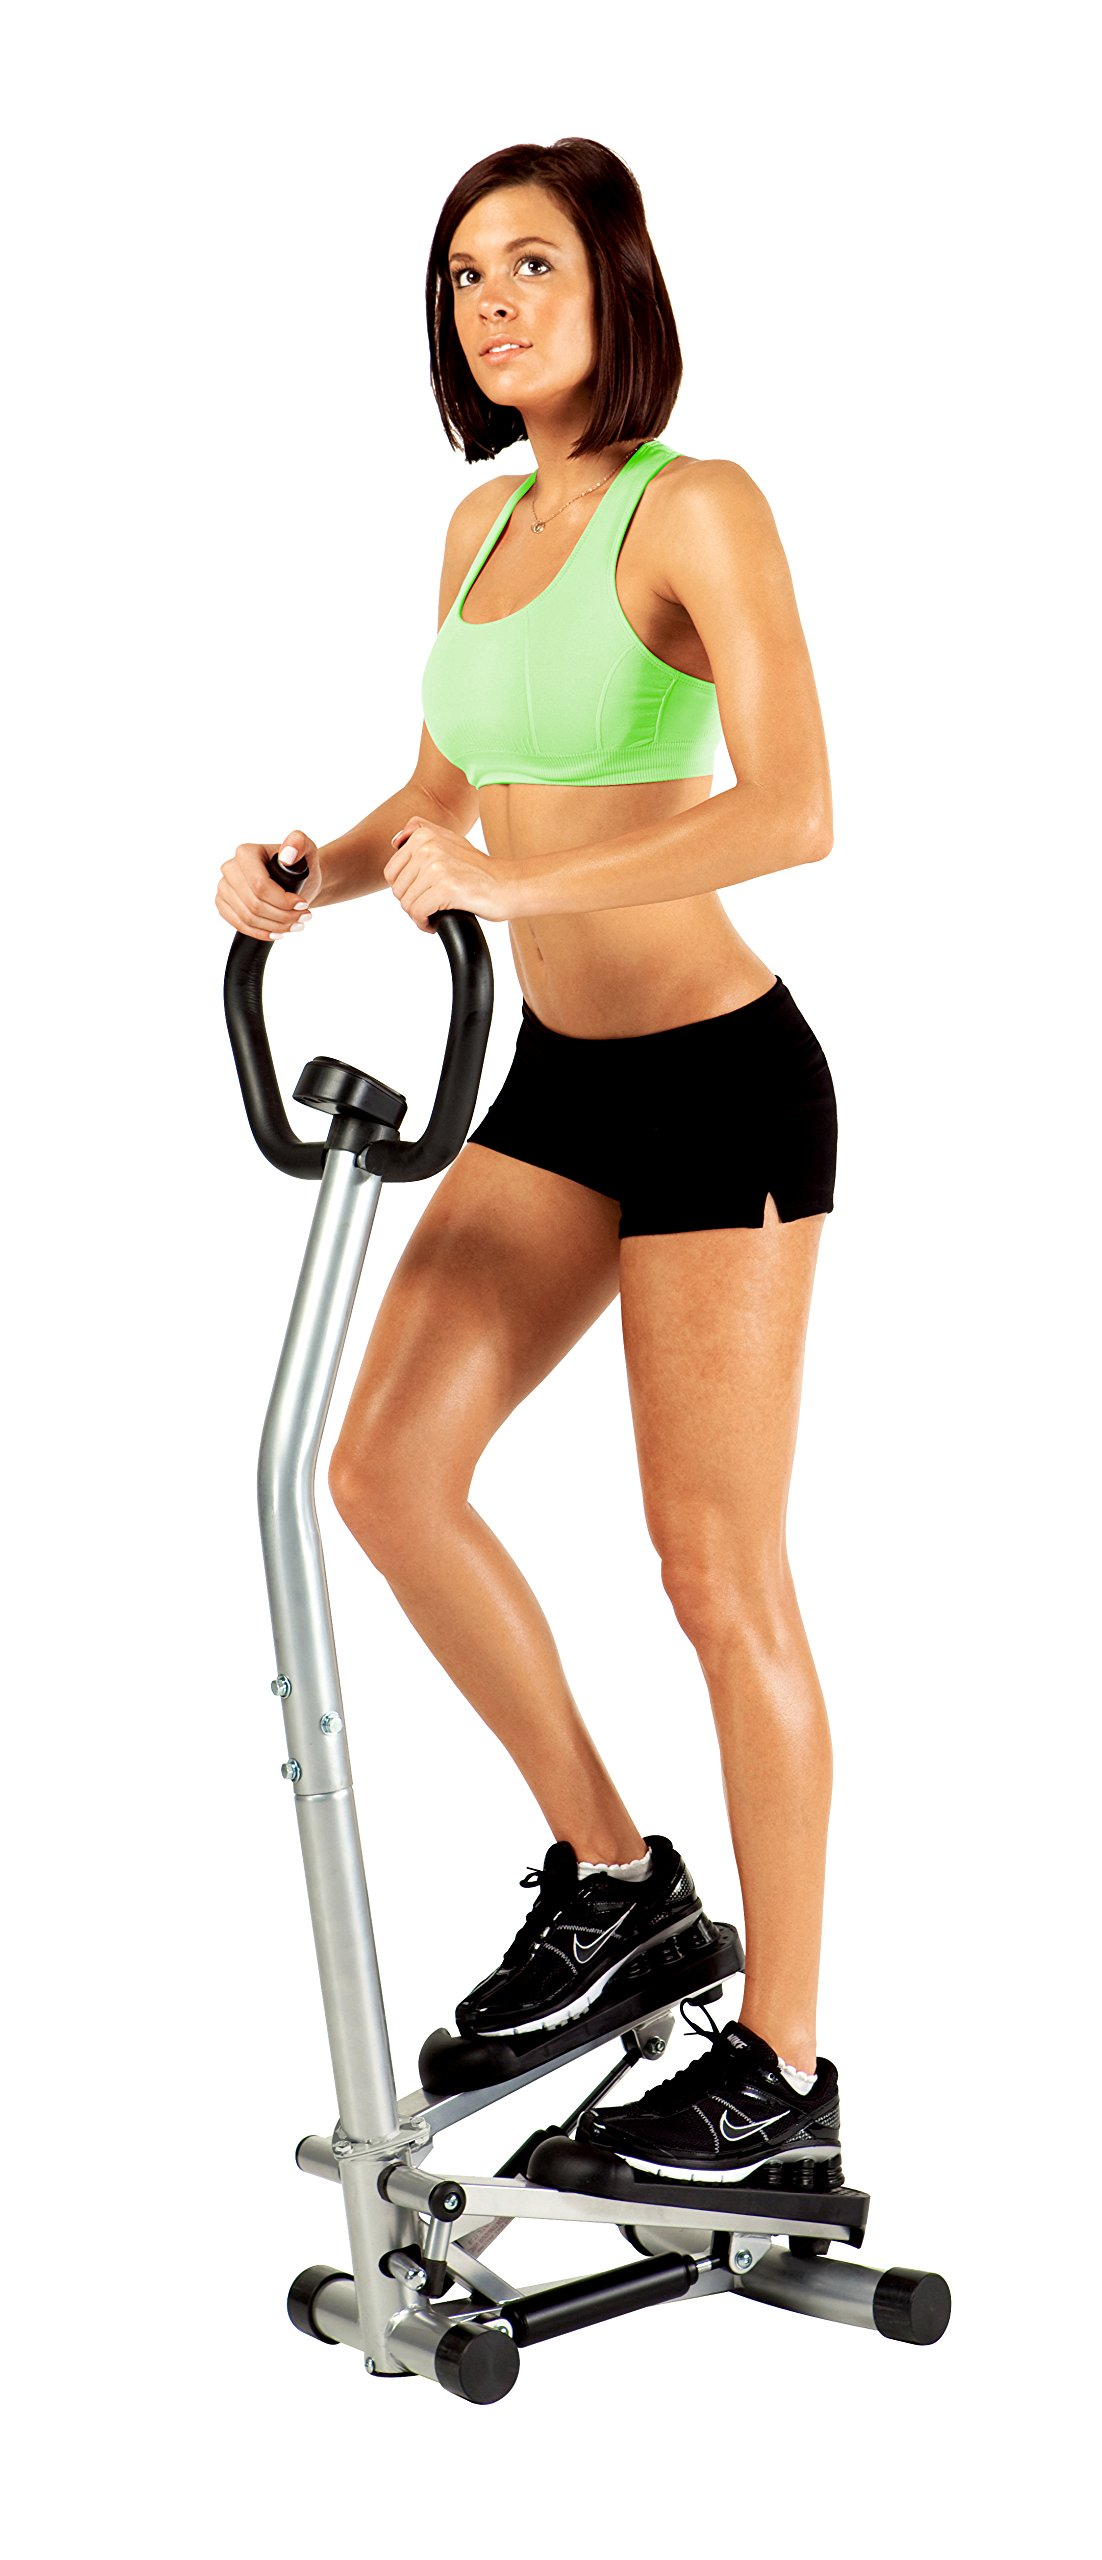 Marcy Home Cardio Exercise Mini Stepper with Handle and Display MS-95 by Marcy